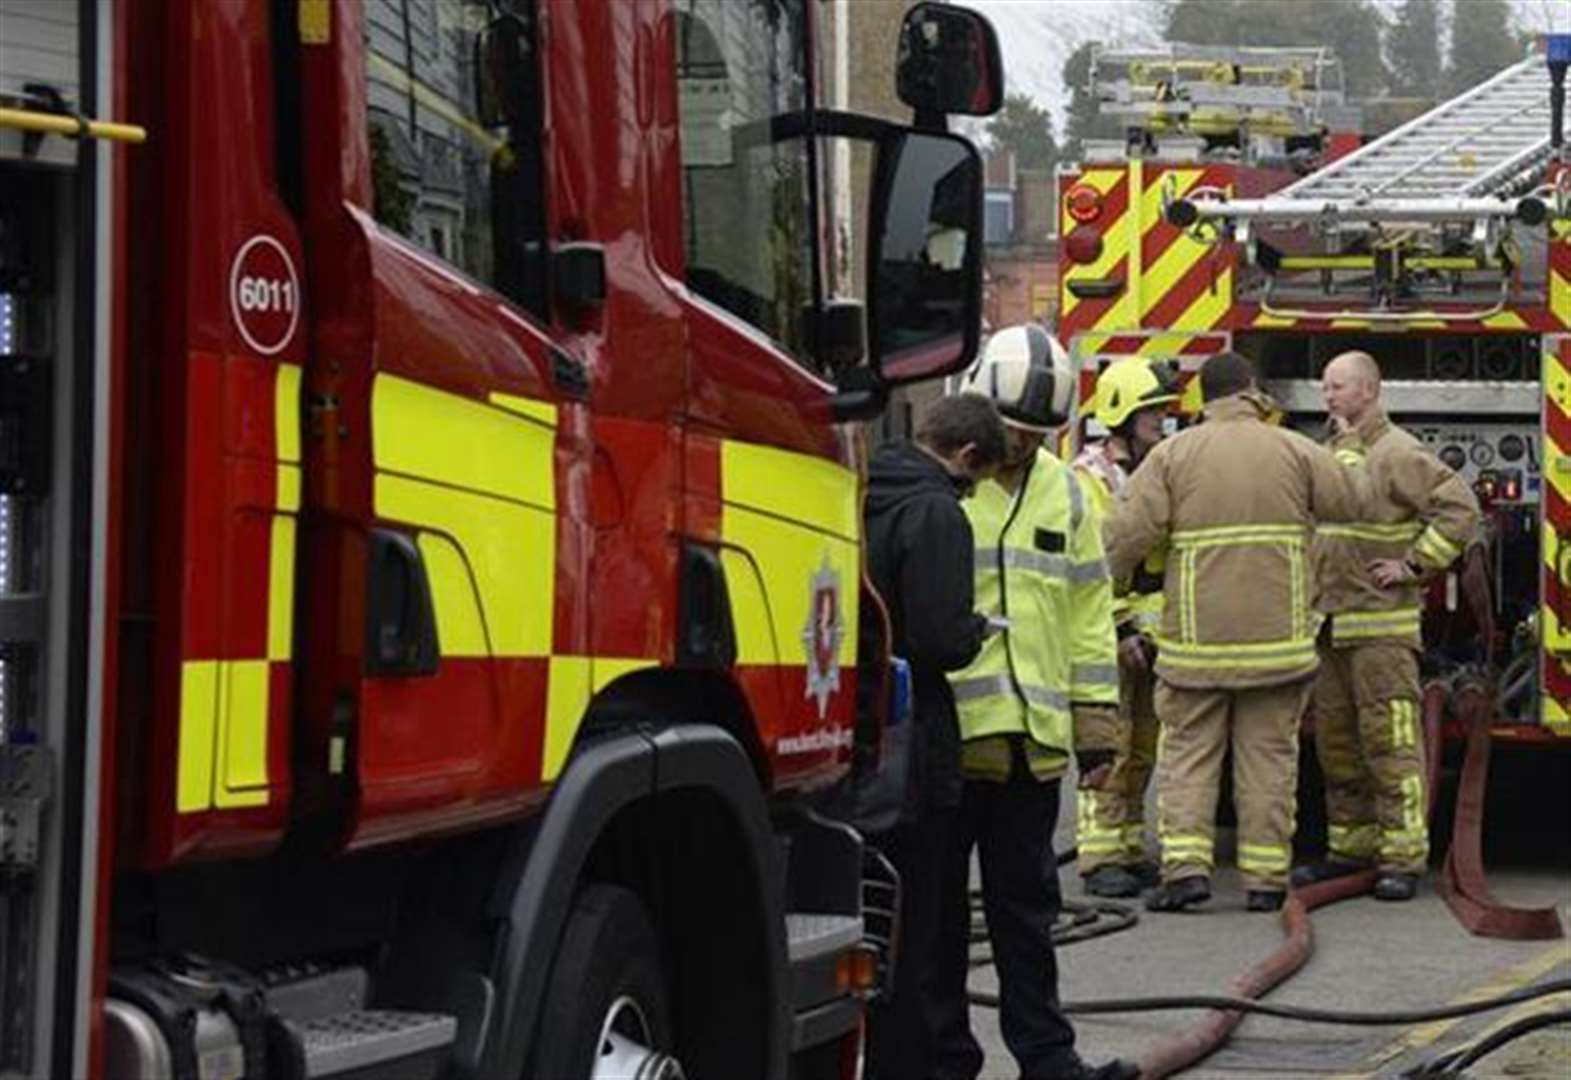 Crews tackle flat fire